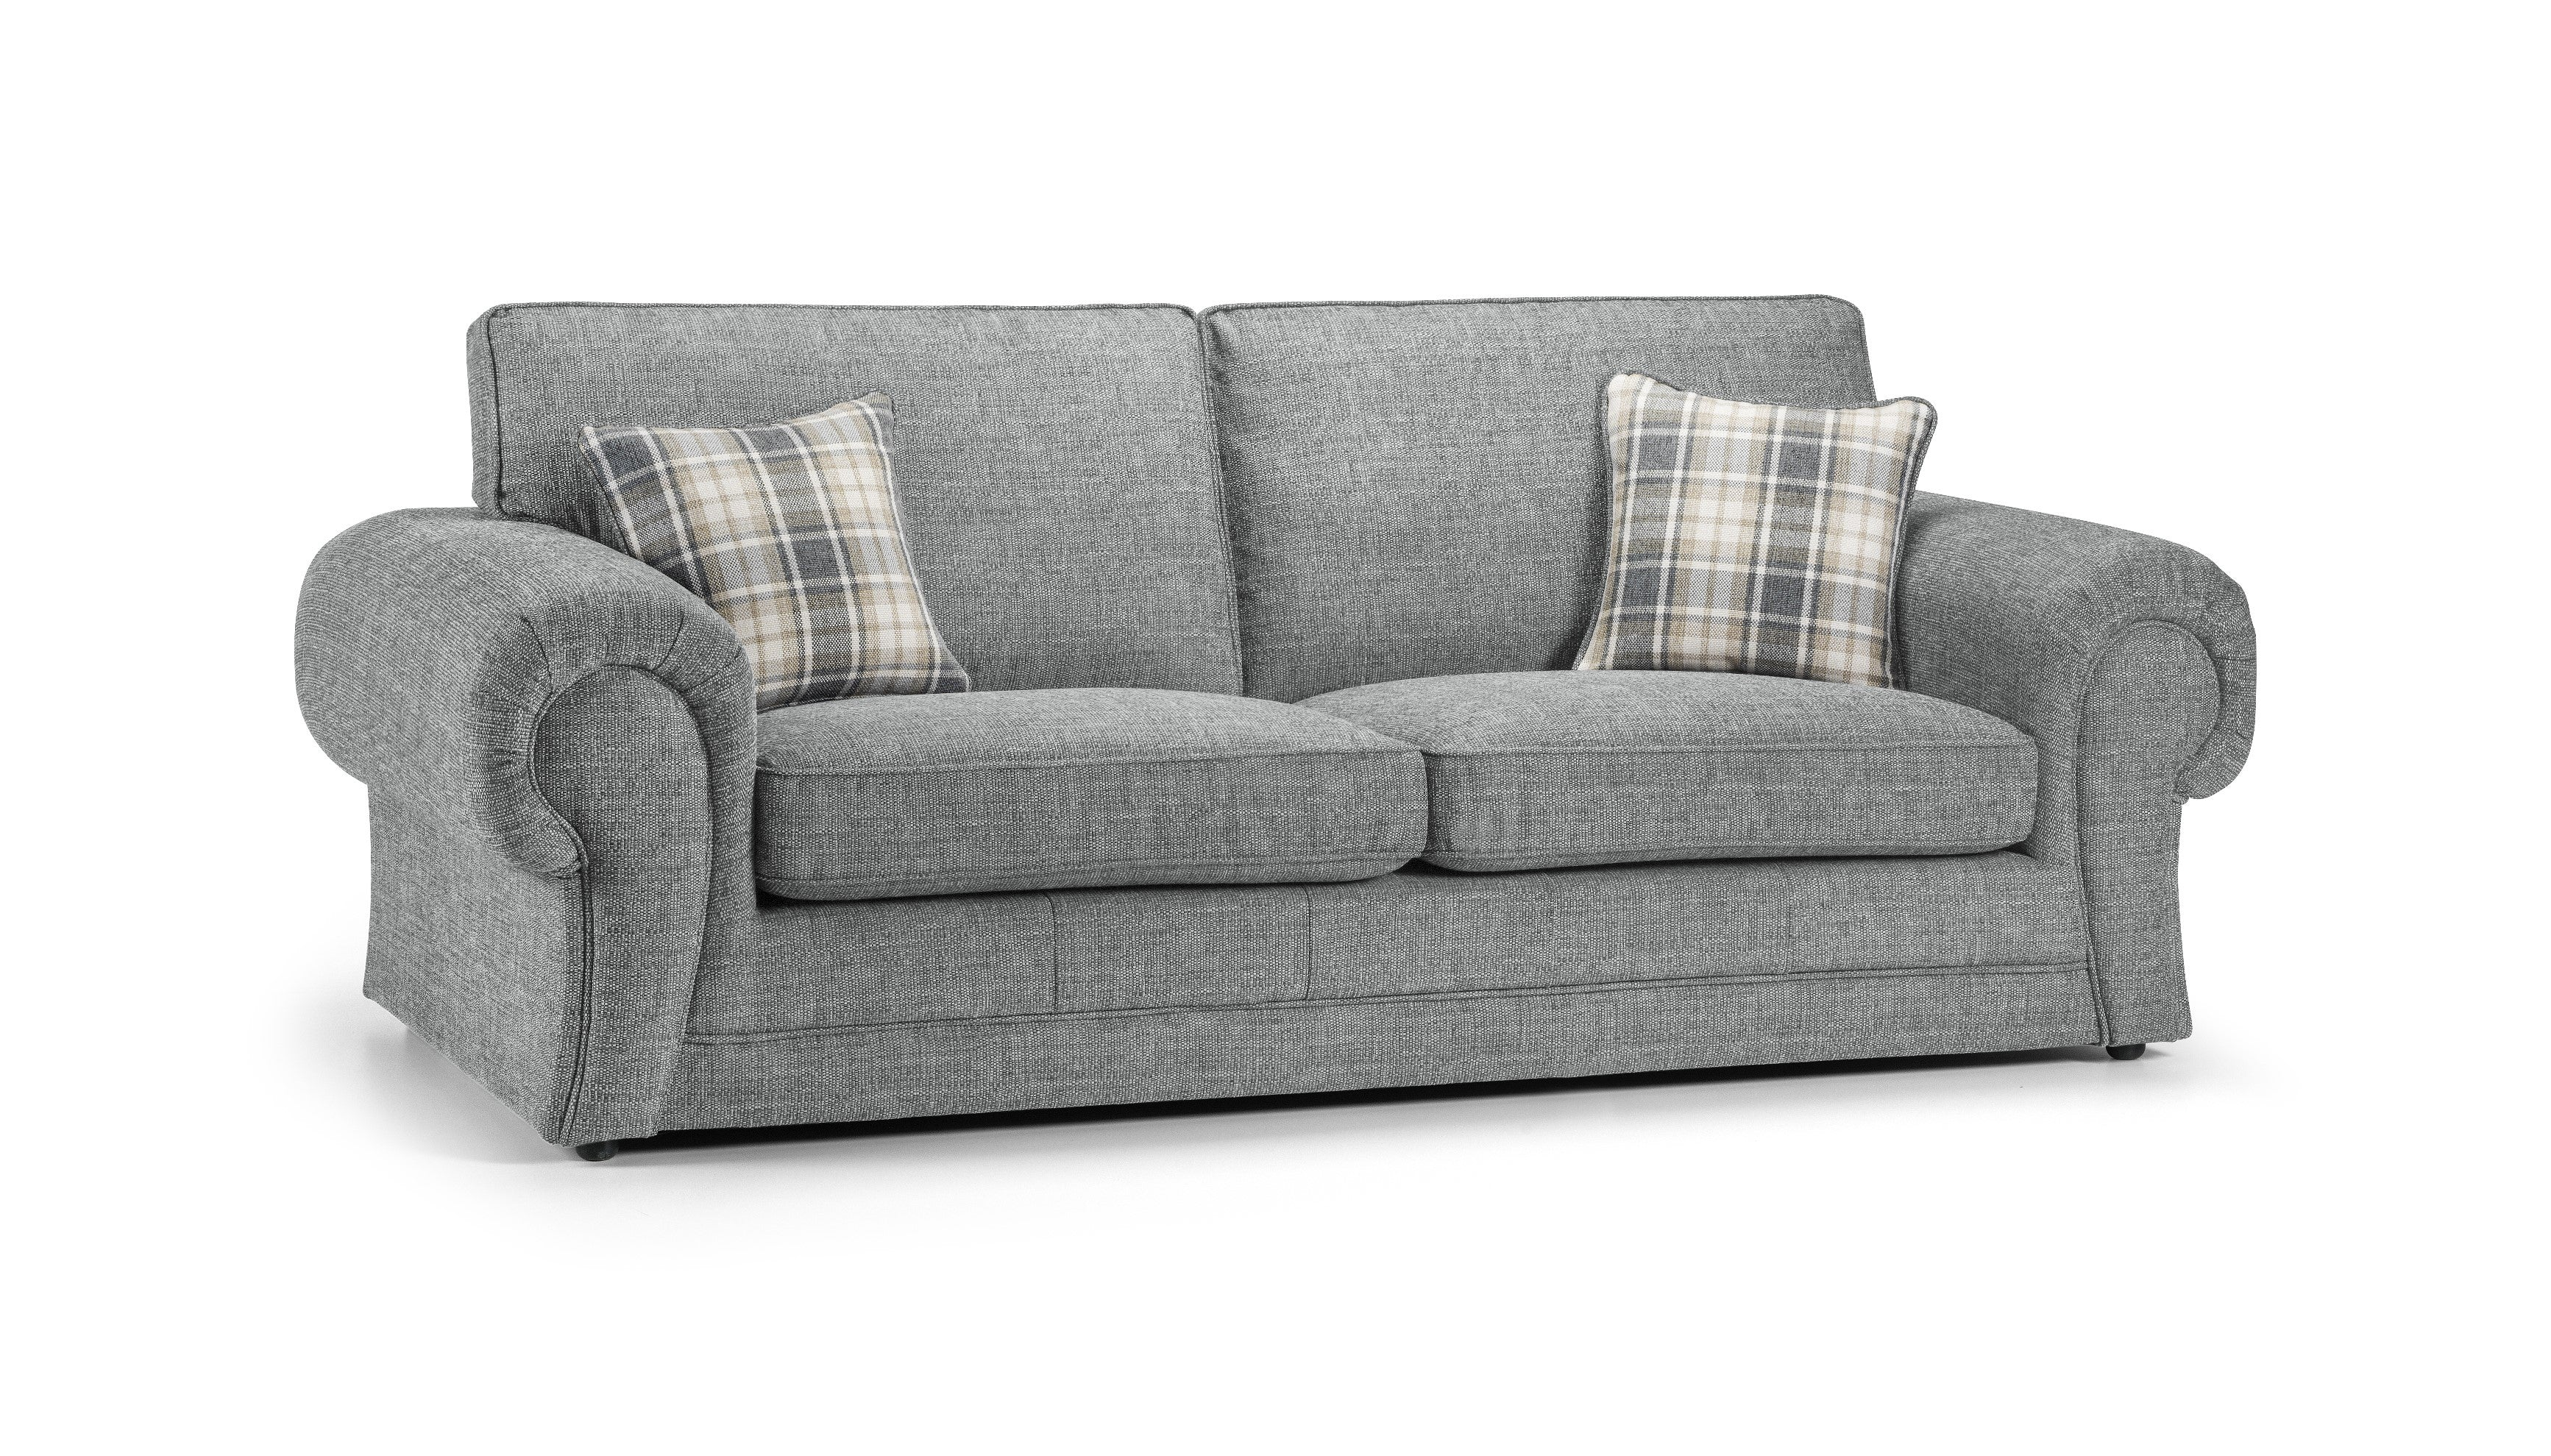 Sofas on finance near Bawtry